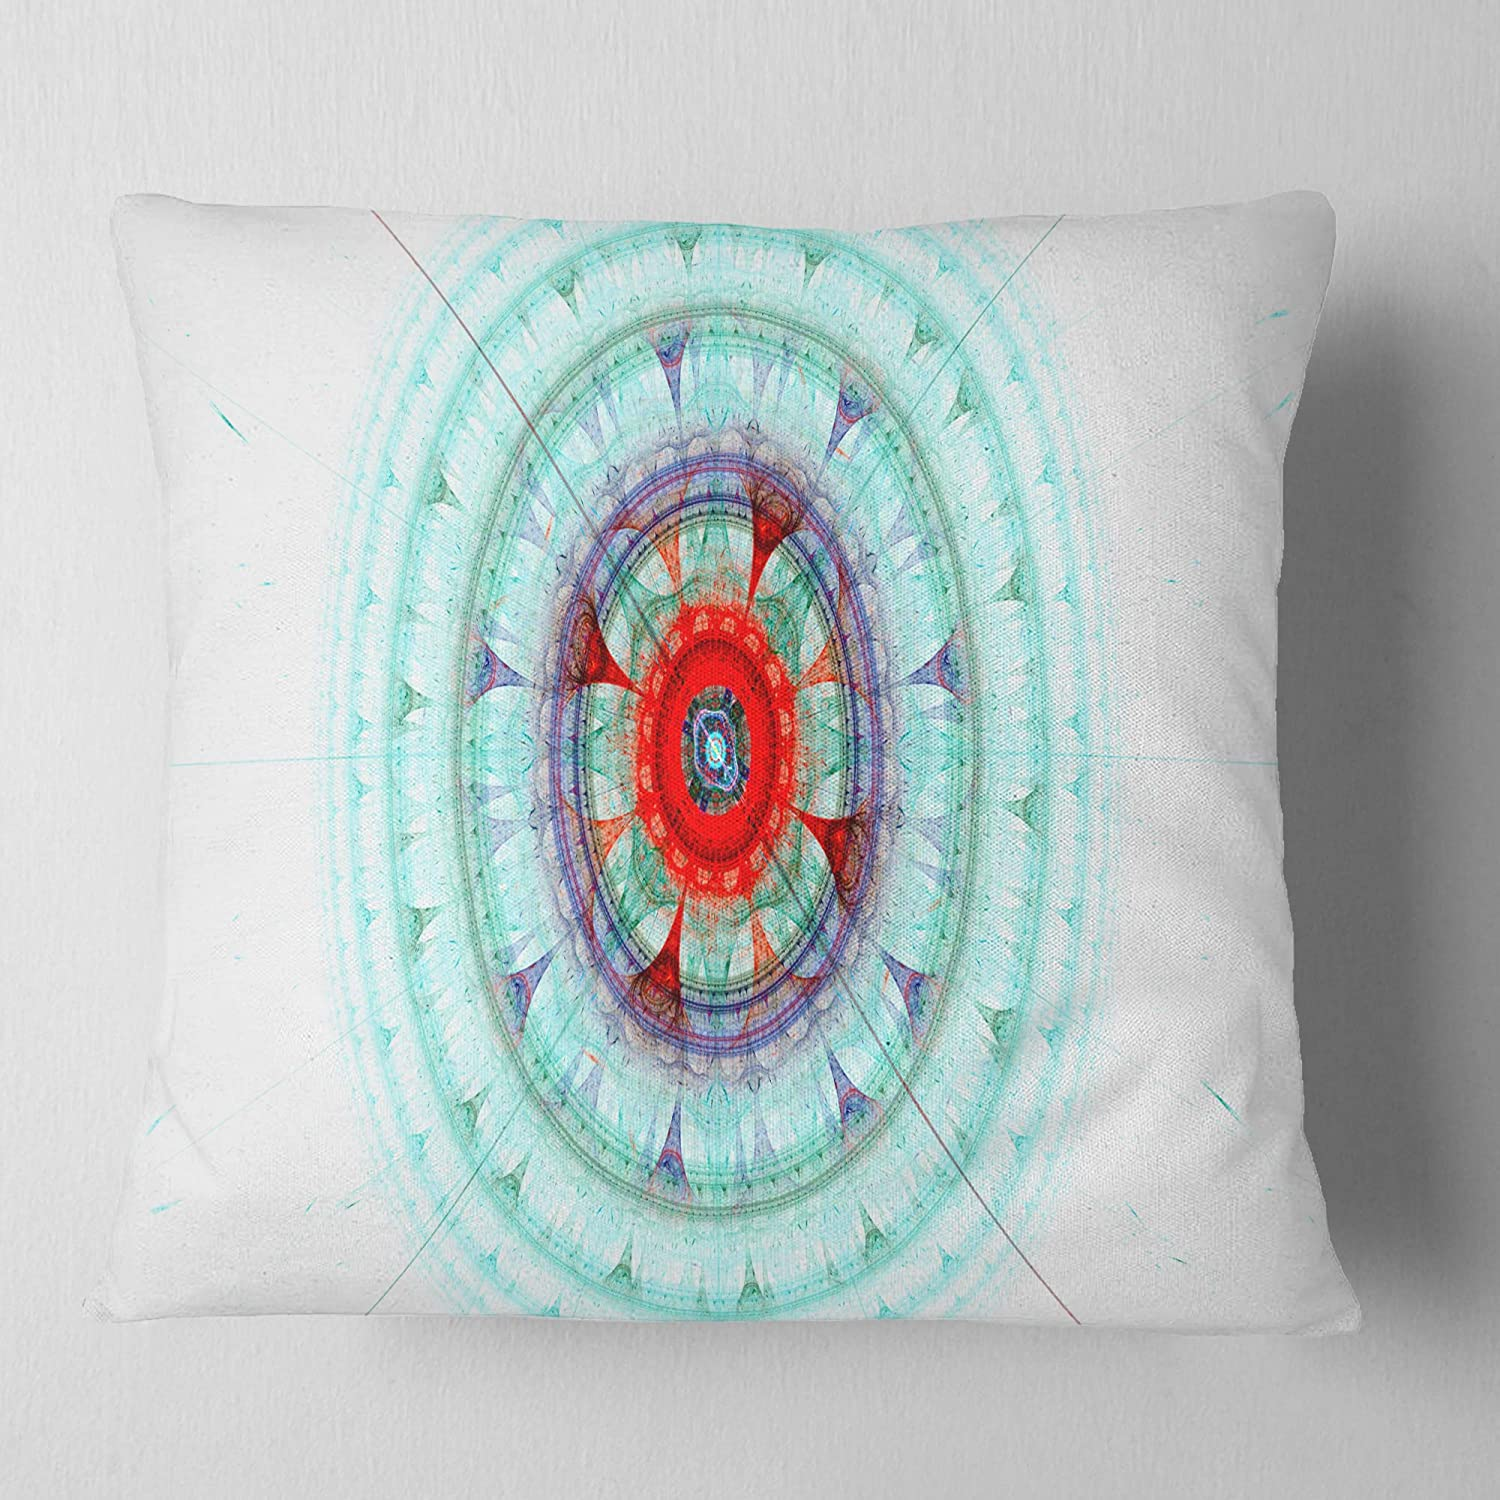 Designart CU16104-16-16 Light Blue Fractal Sphere Abstract Cushion Cover for Living Room Insert Printed on Both Side in x 16 in Sofa Throw Pillow 16 in